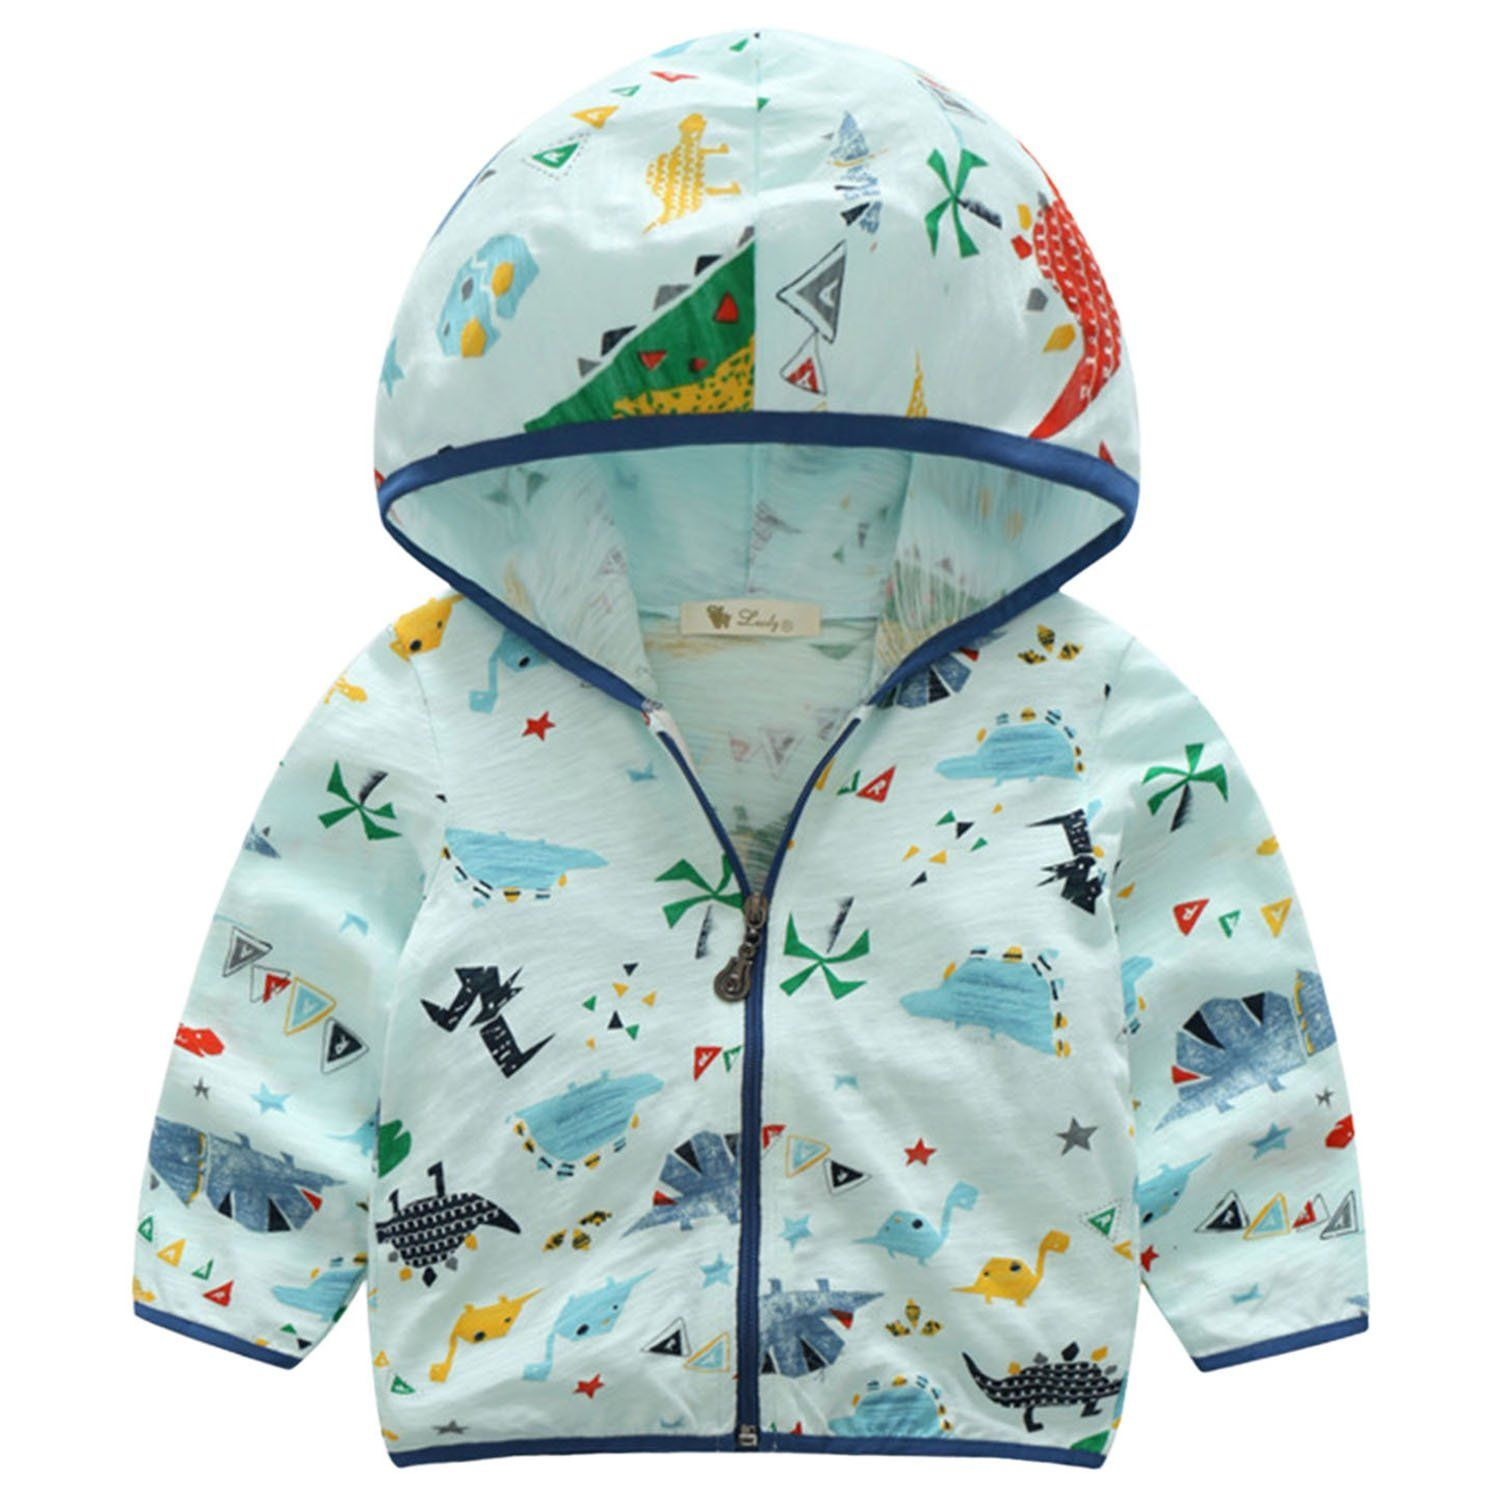 49e04d6d2 Summer Boys Long Sleeve Soft Cotton Dinosaur Printing Sun Protection Coat  Anti UV Zipper Shirt Windbreaker